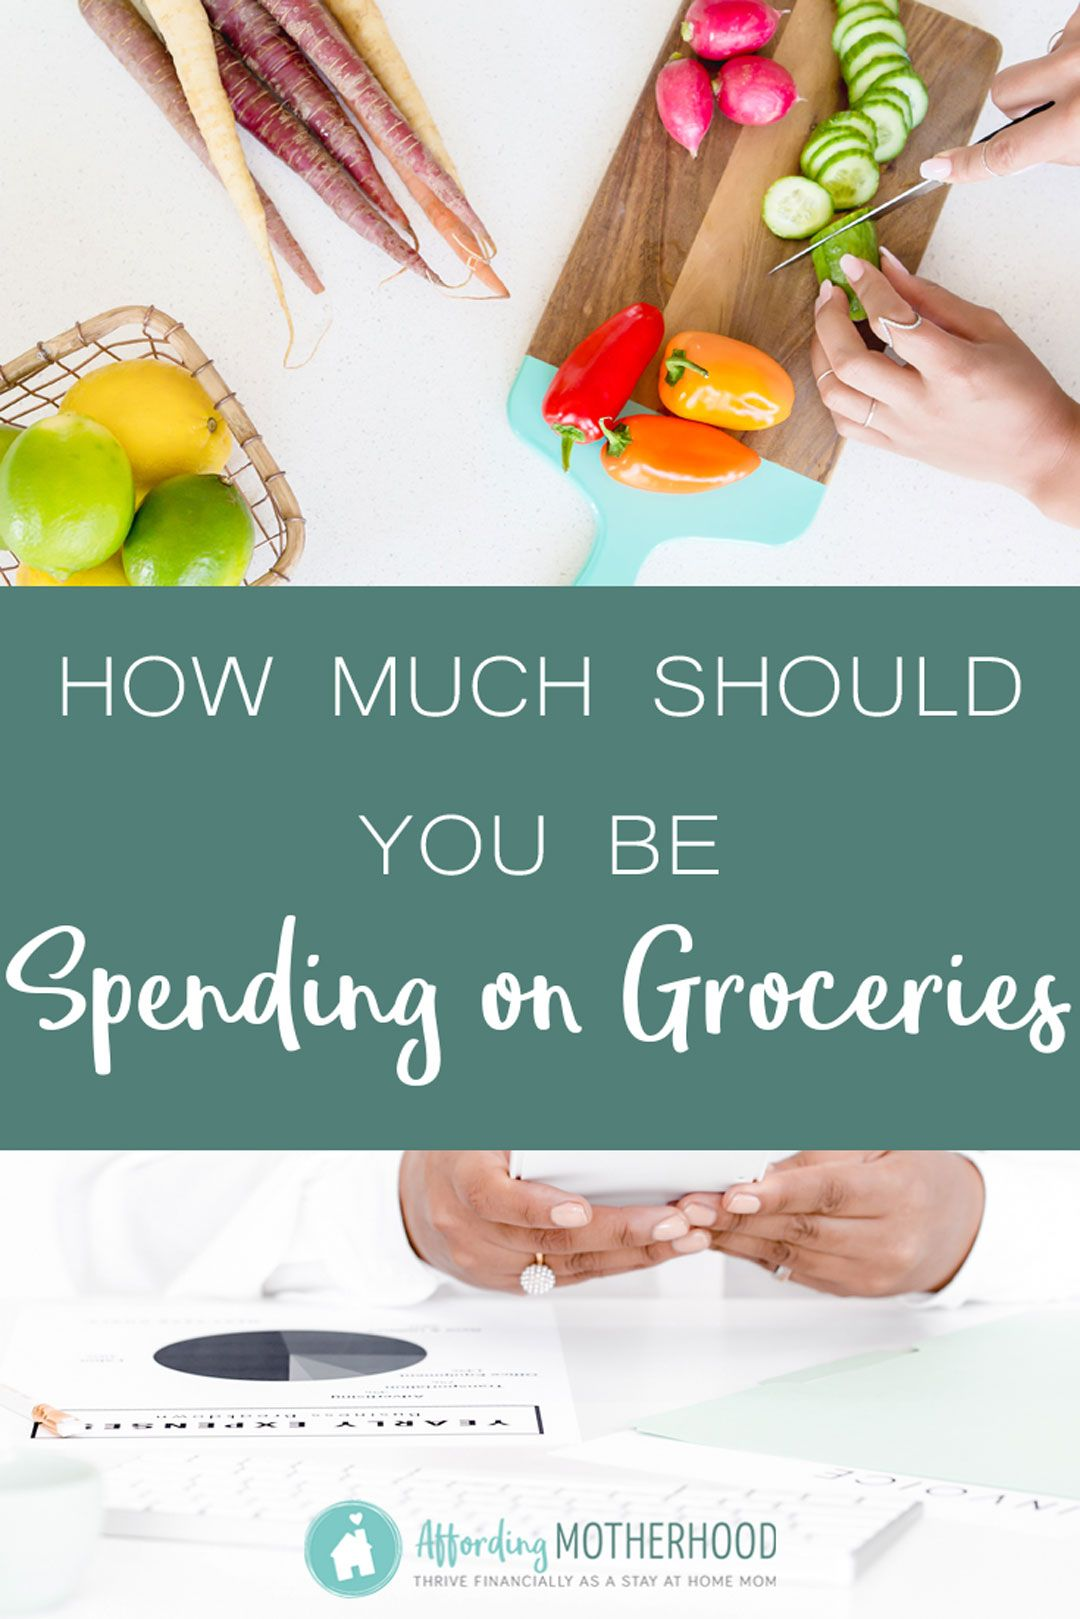 Do you feel like you're spending way too much on groceries